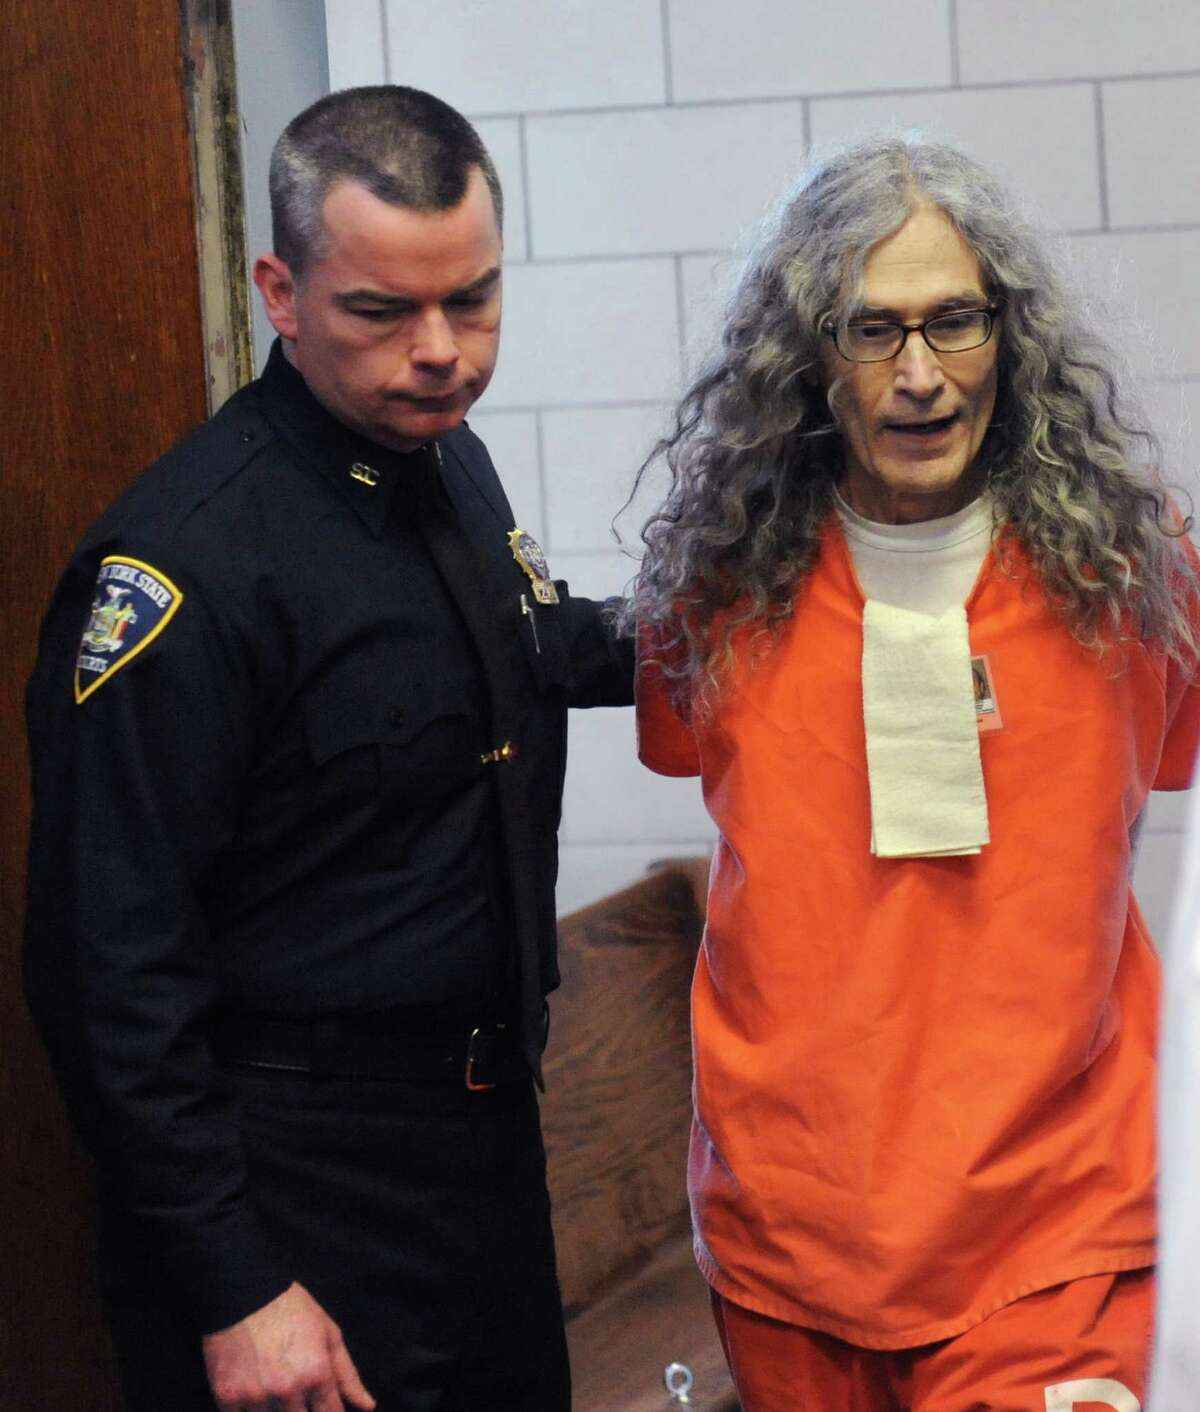 Rodney Alcala - Convicted in killings in California and New York, Alcala is suspected in two Washington state killings. Investigators say he may have killed as many as 130 people. He has been sentenced to death in California.